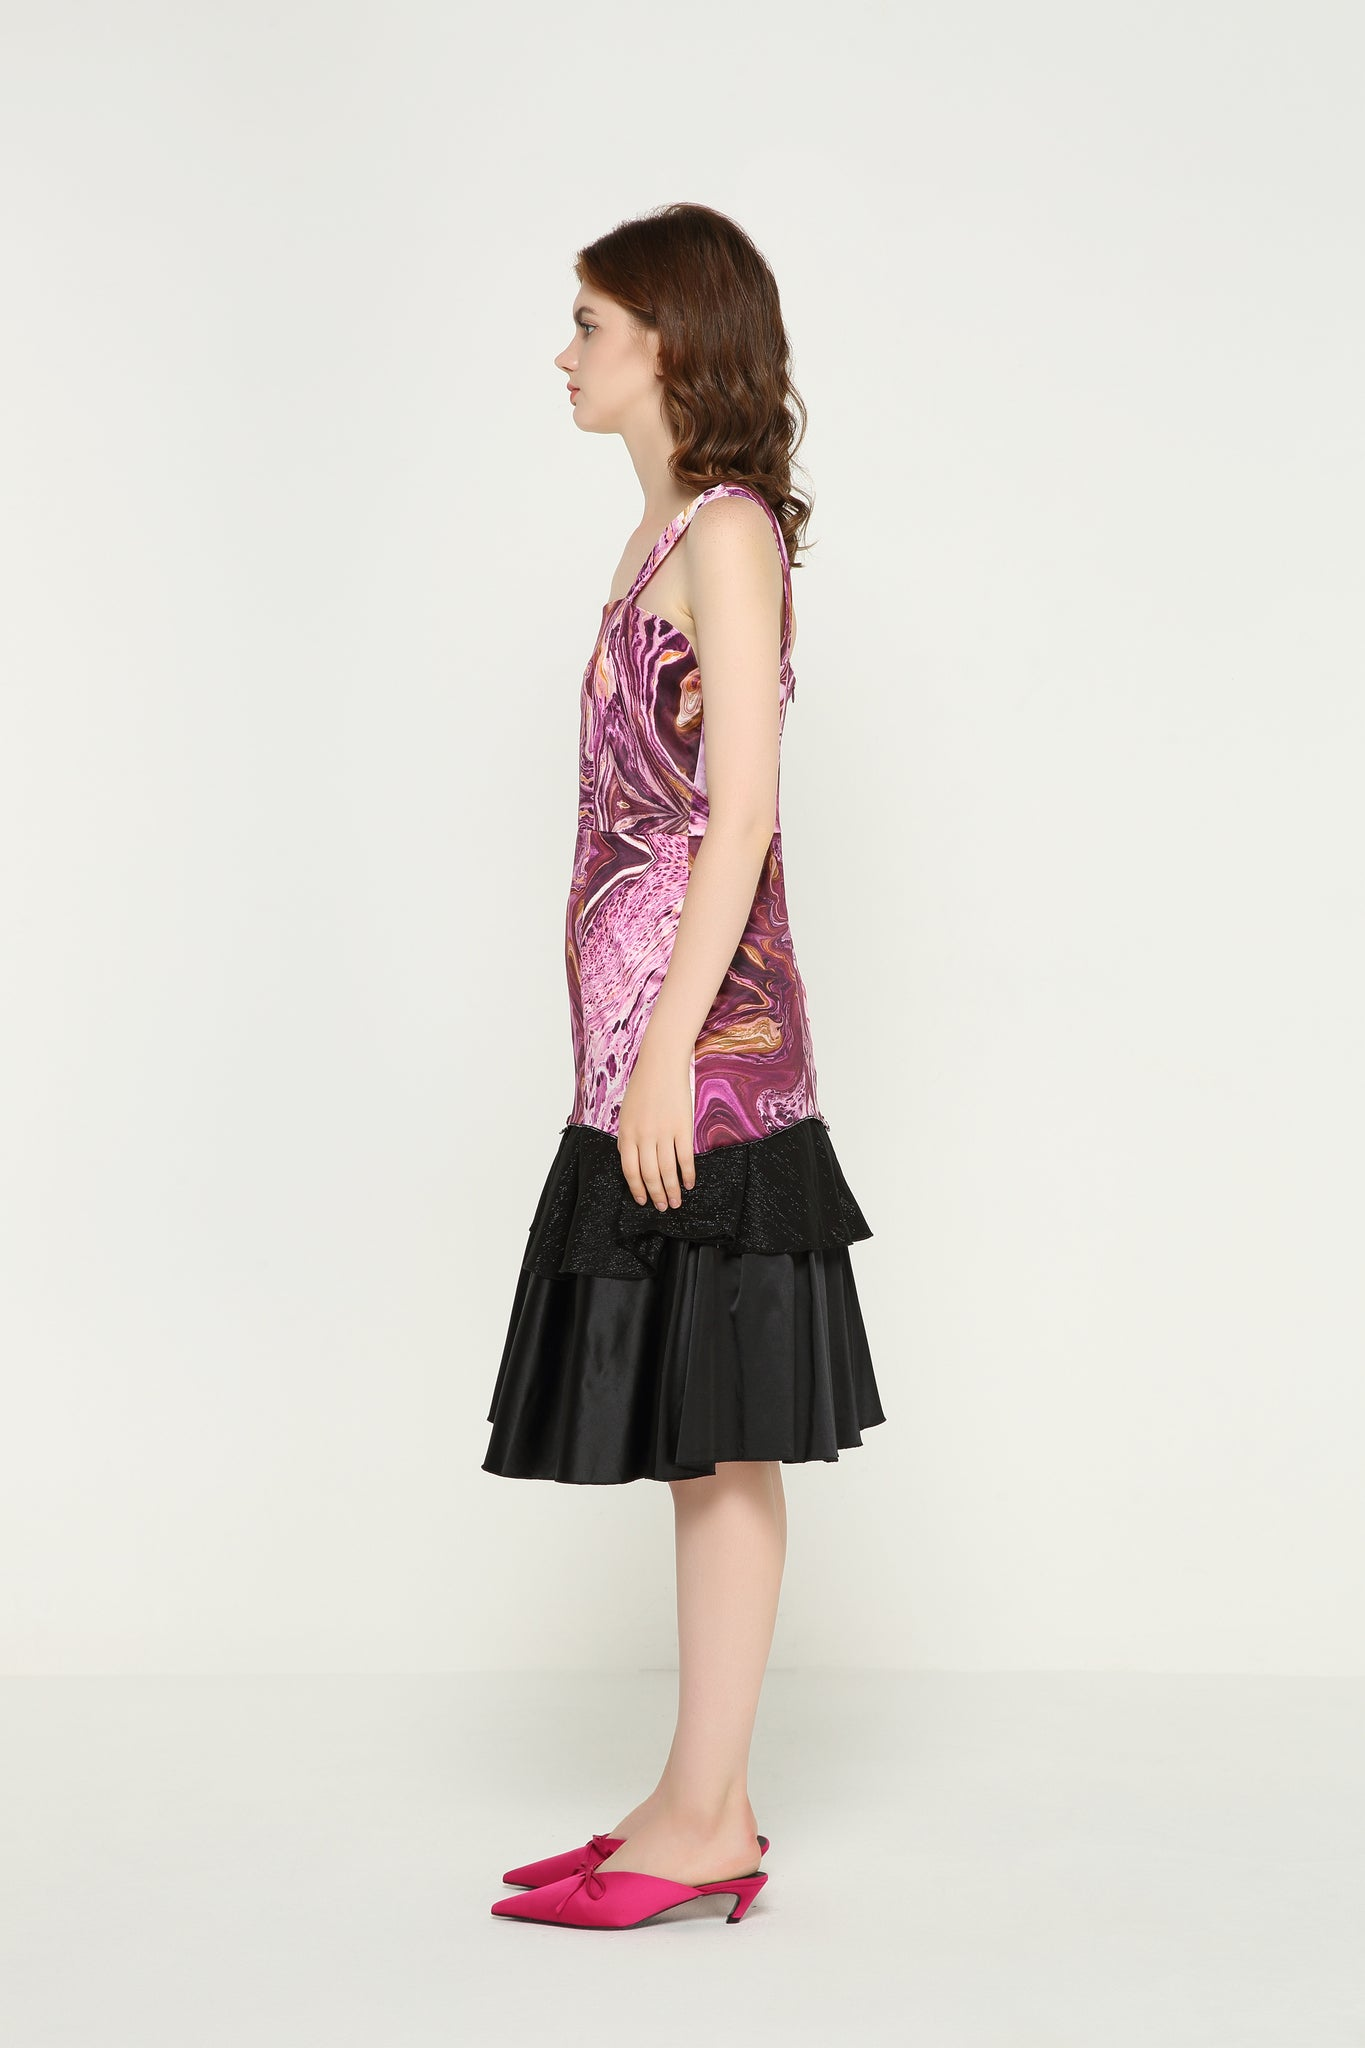 ISABELLE Am I Elegant Satin Layered Dress